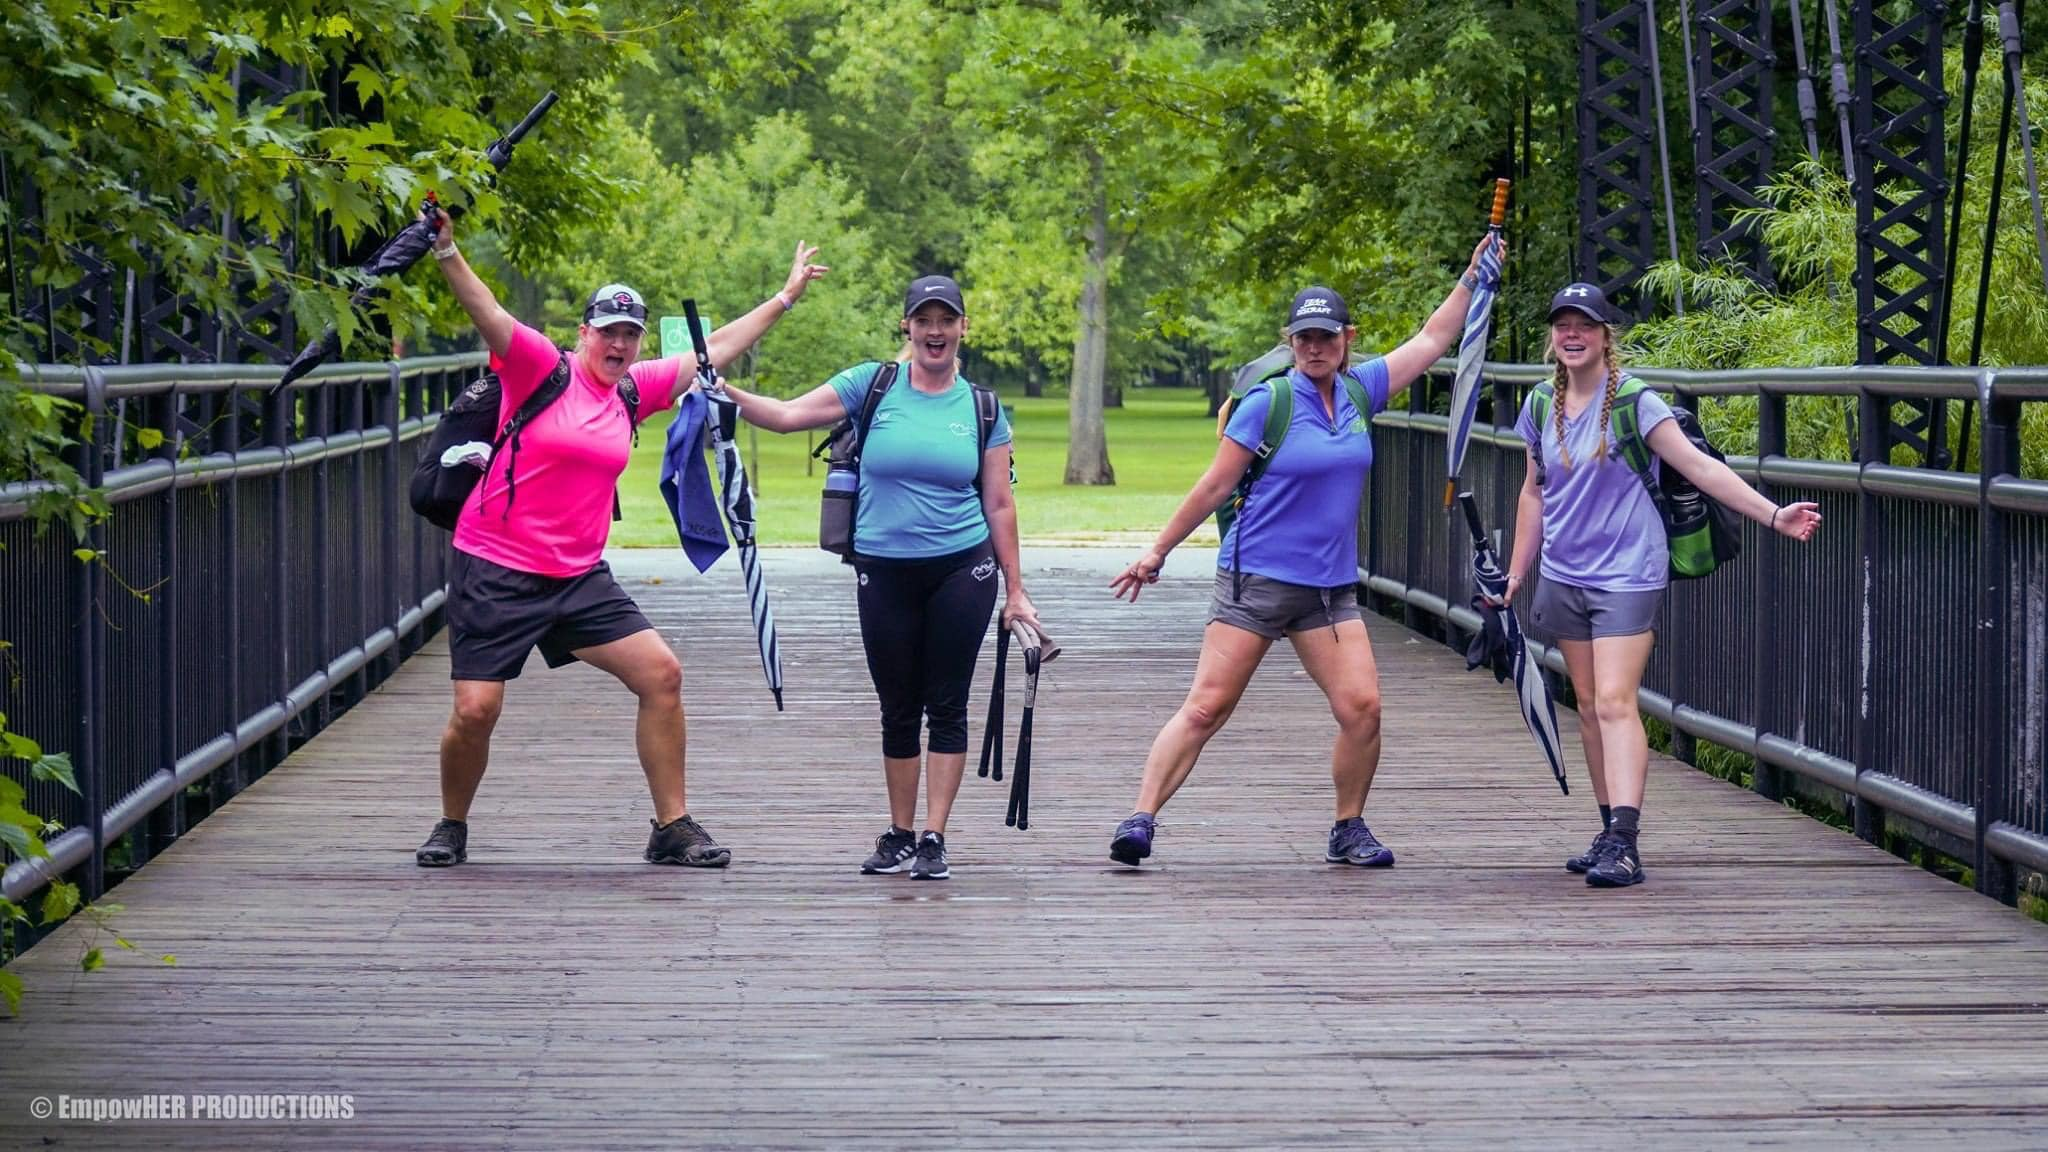 Andrea Eaton, professional disc golfer, with friends